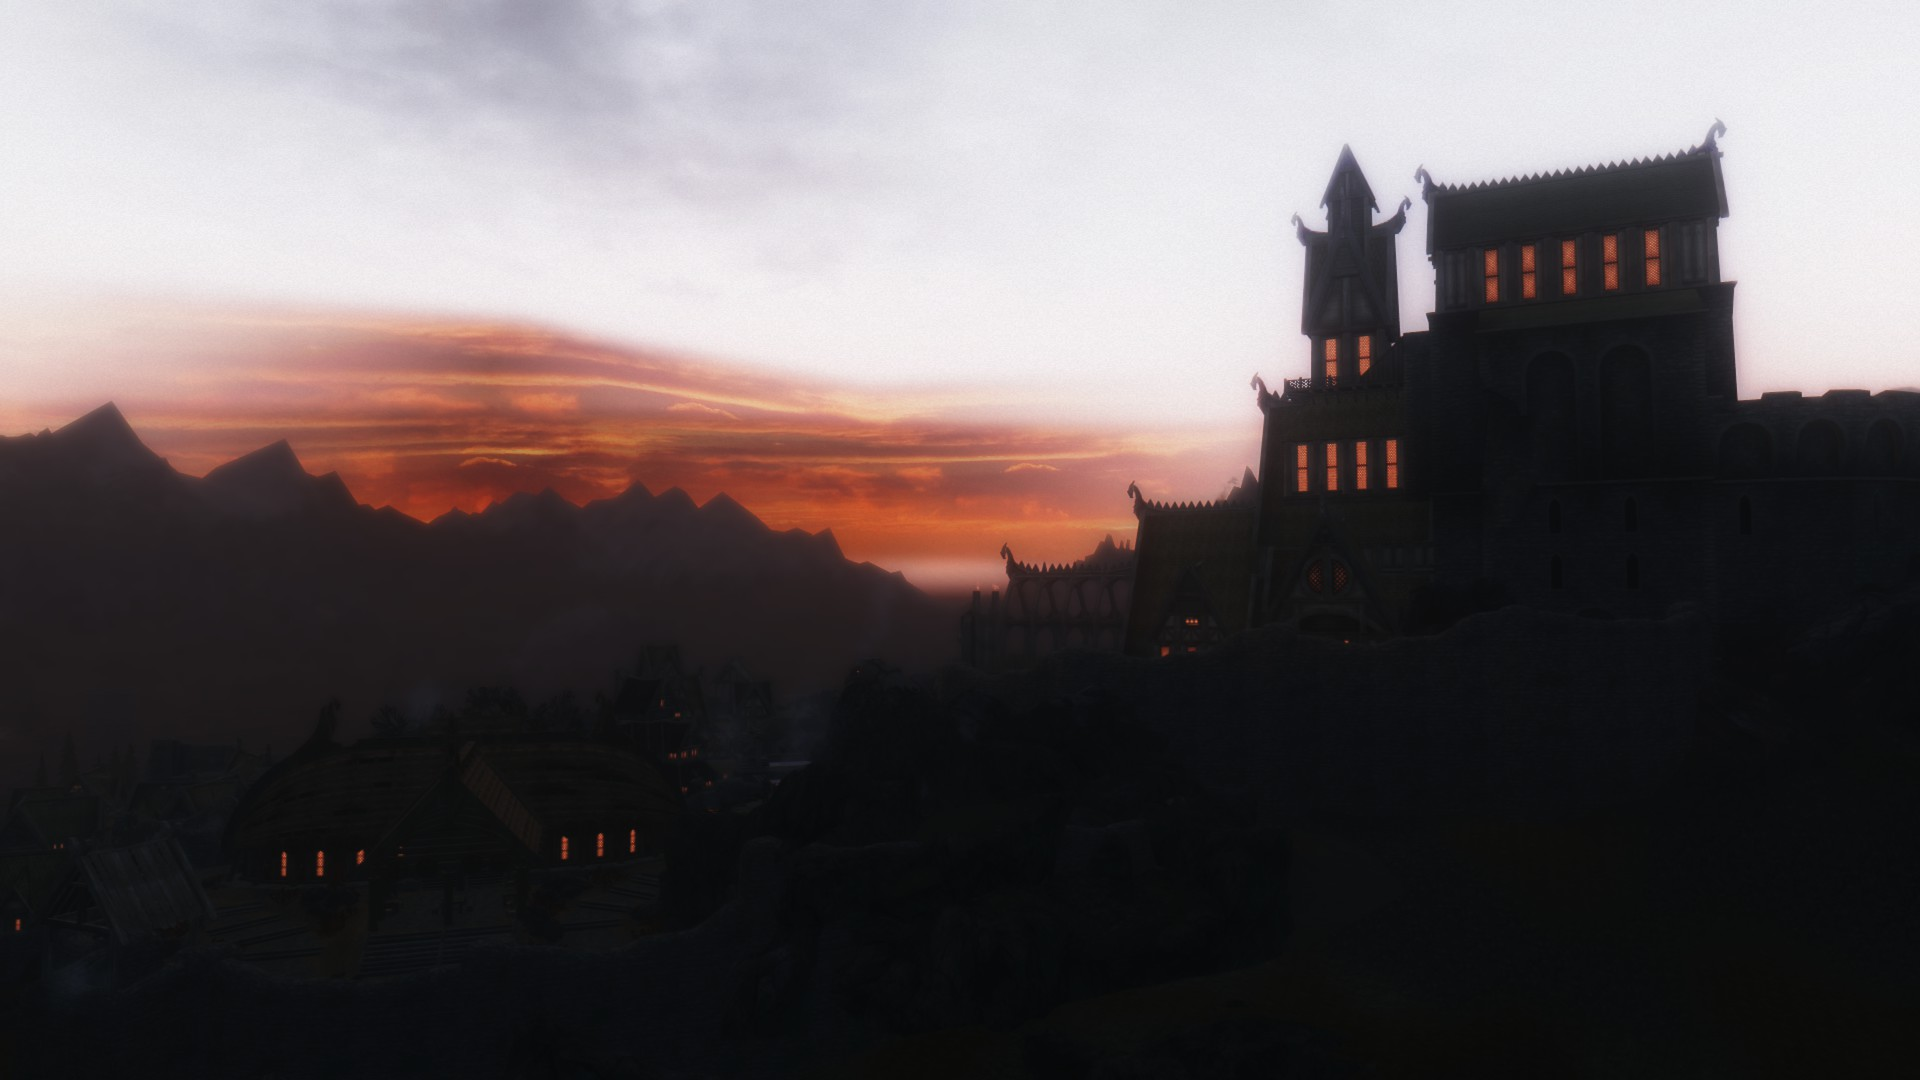 Sunset over Dragonsreach